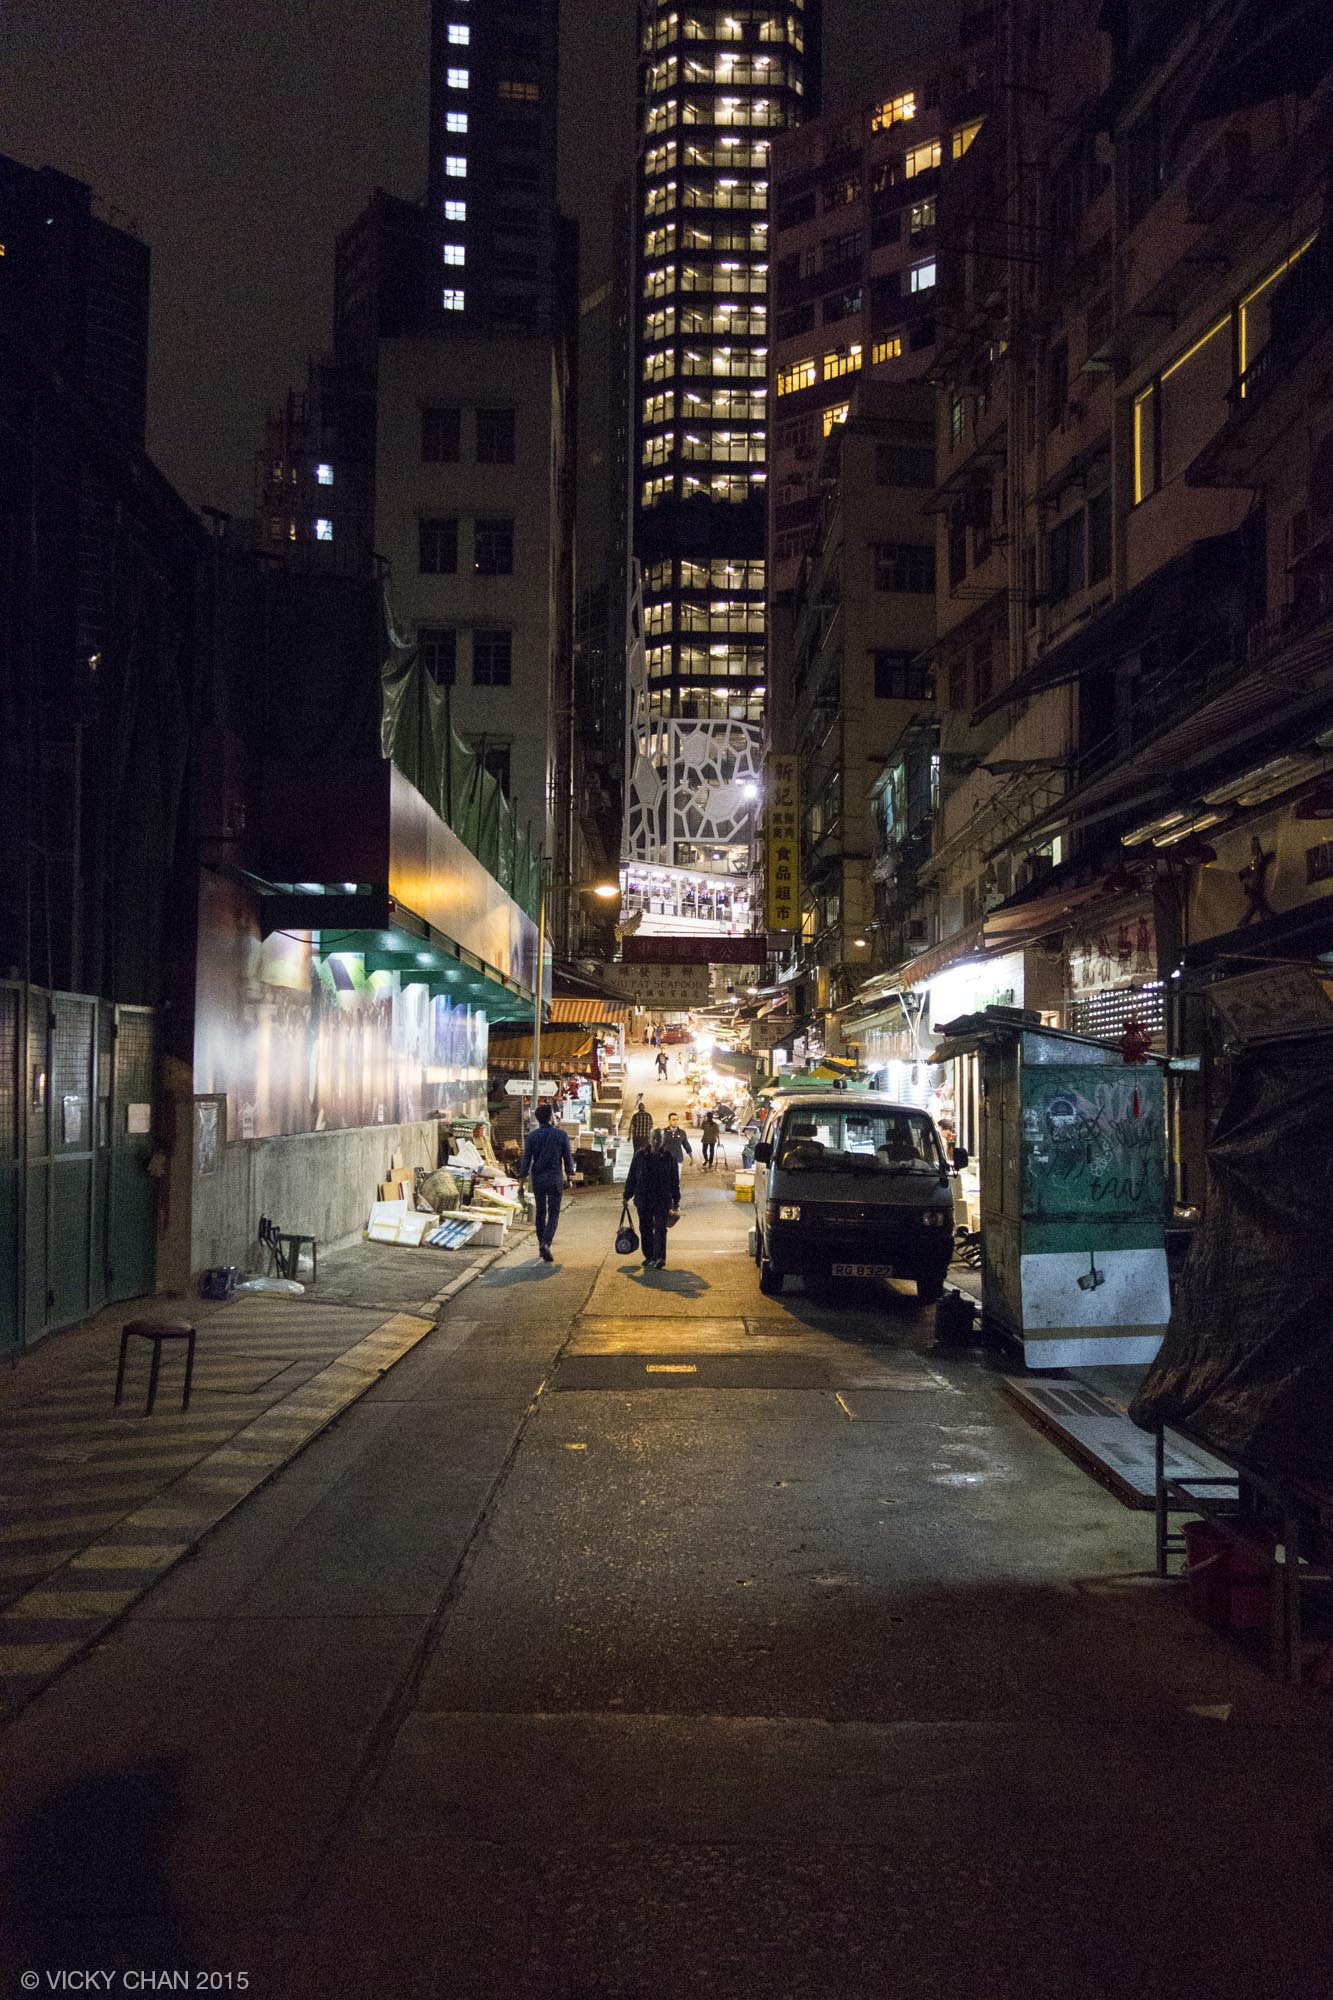 Hong Kong Soho, night, street lighting, Cage Street, Peel Street, Elgin Street, Hollywood Road, PMQ